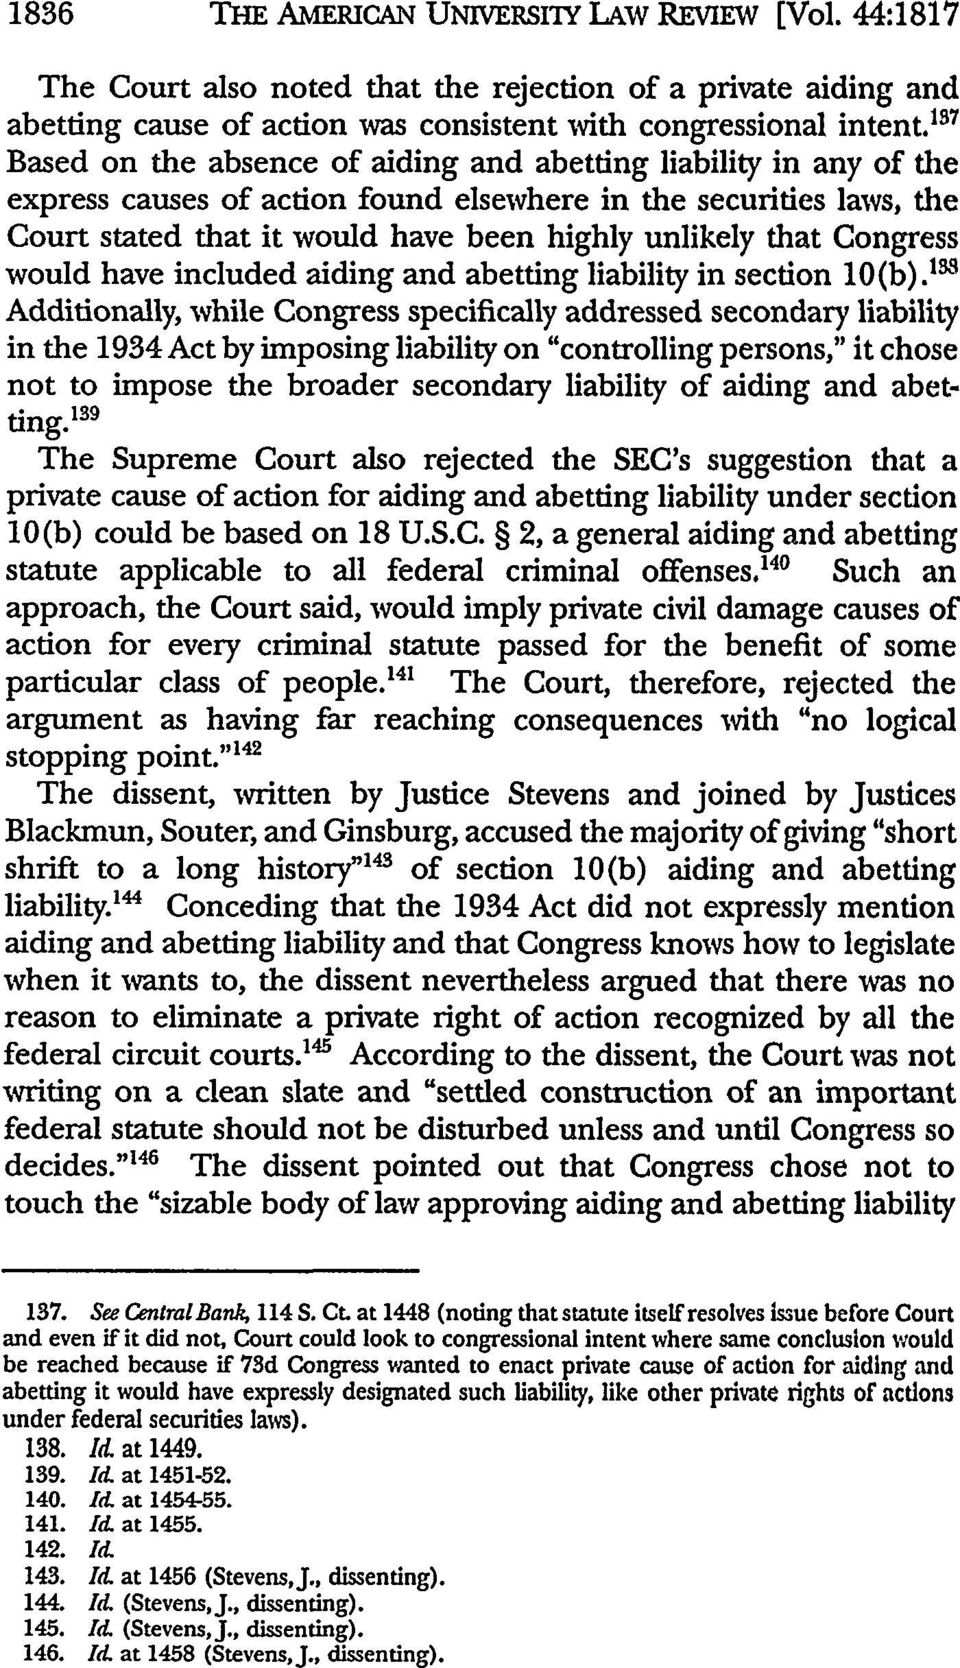 Congress would have included aiding and abetting liability in section 10(b).